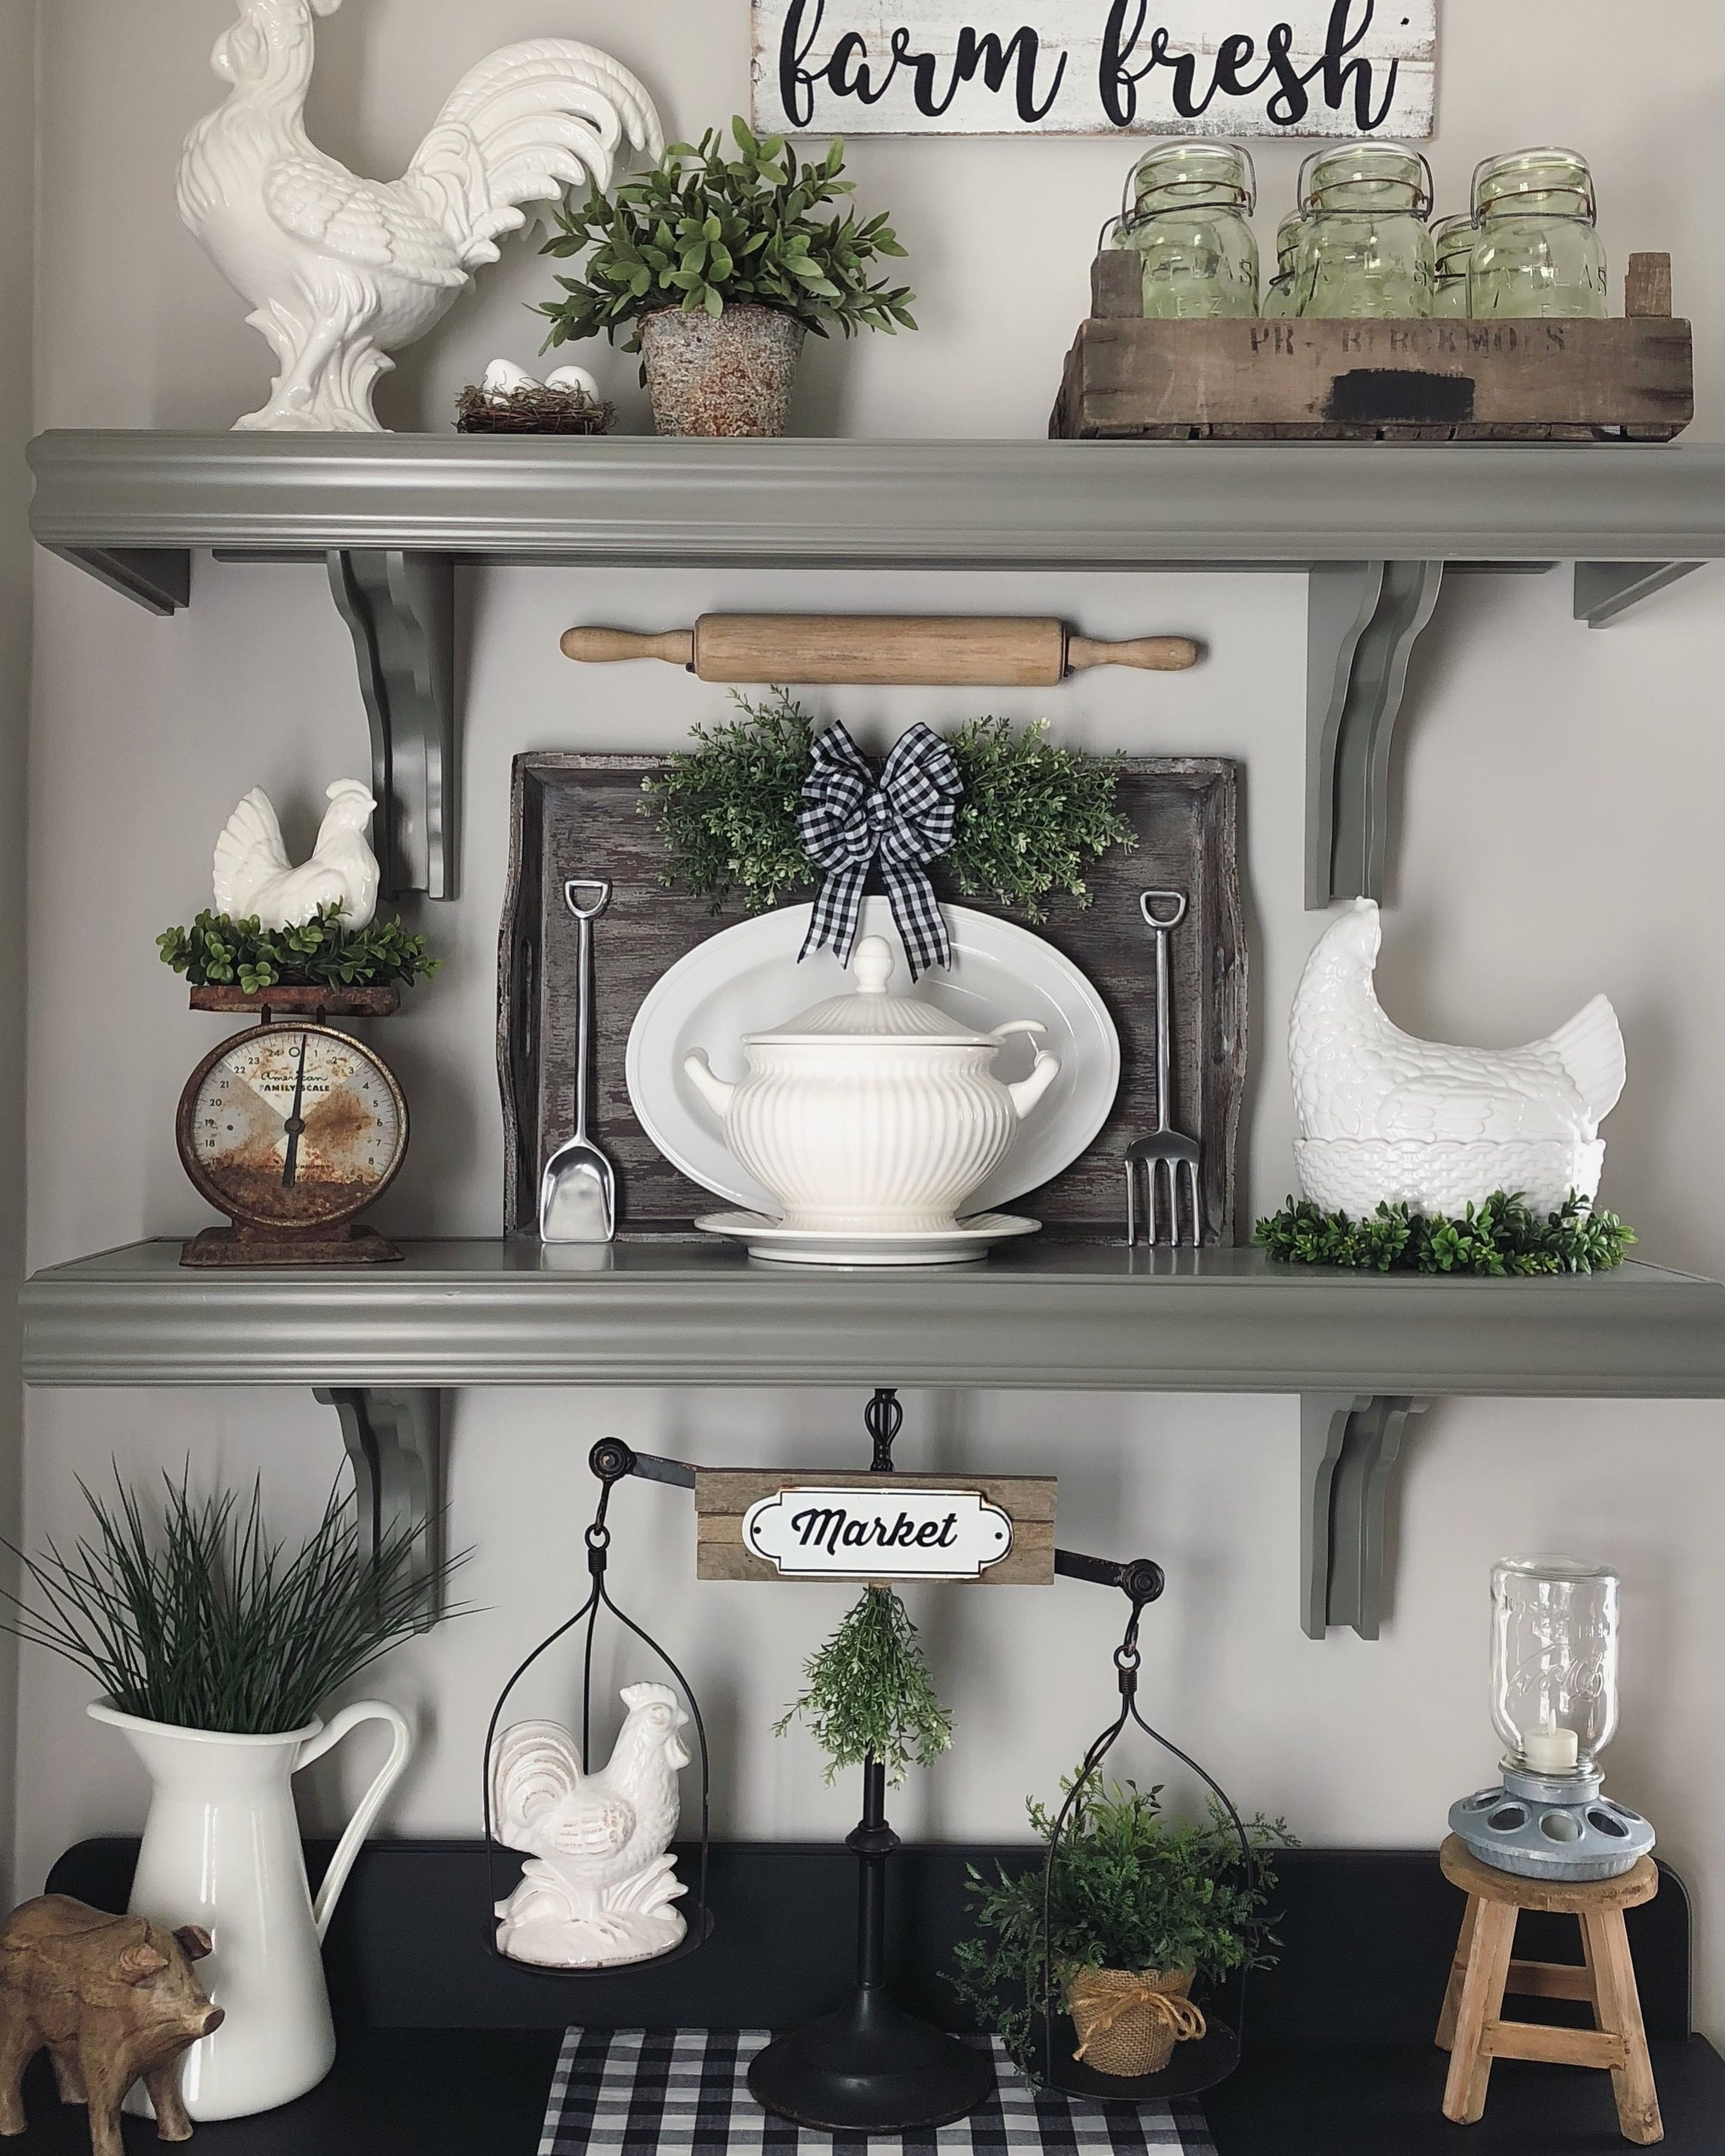 Farmhouse Dining Room Shelves Kitchen Wall Decor White Chickens And Roosters Old Scale Buffalo Check Wall Dining Room Wall Decor Dining Room Shelves Decor